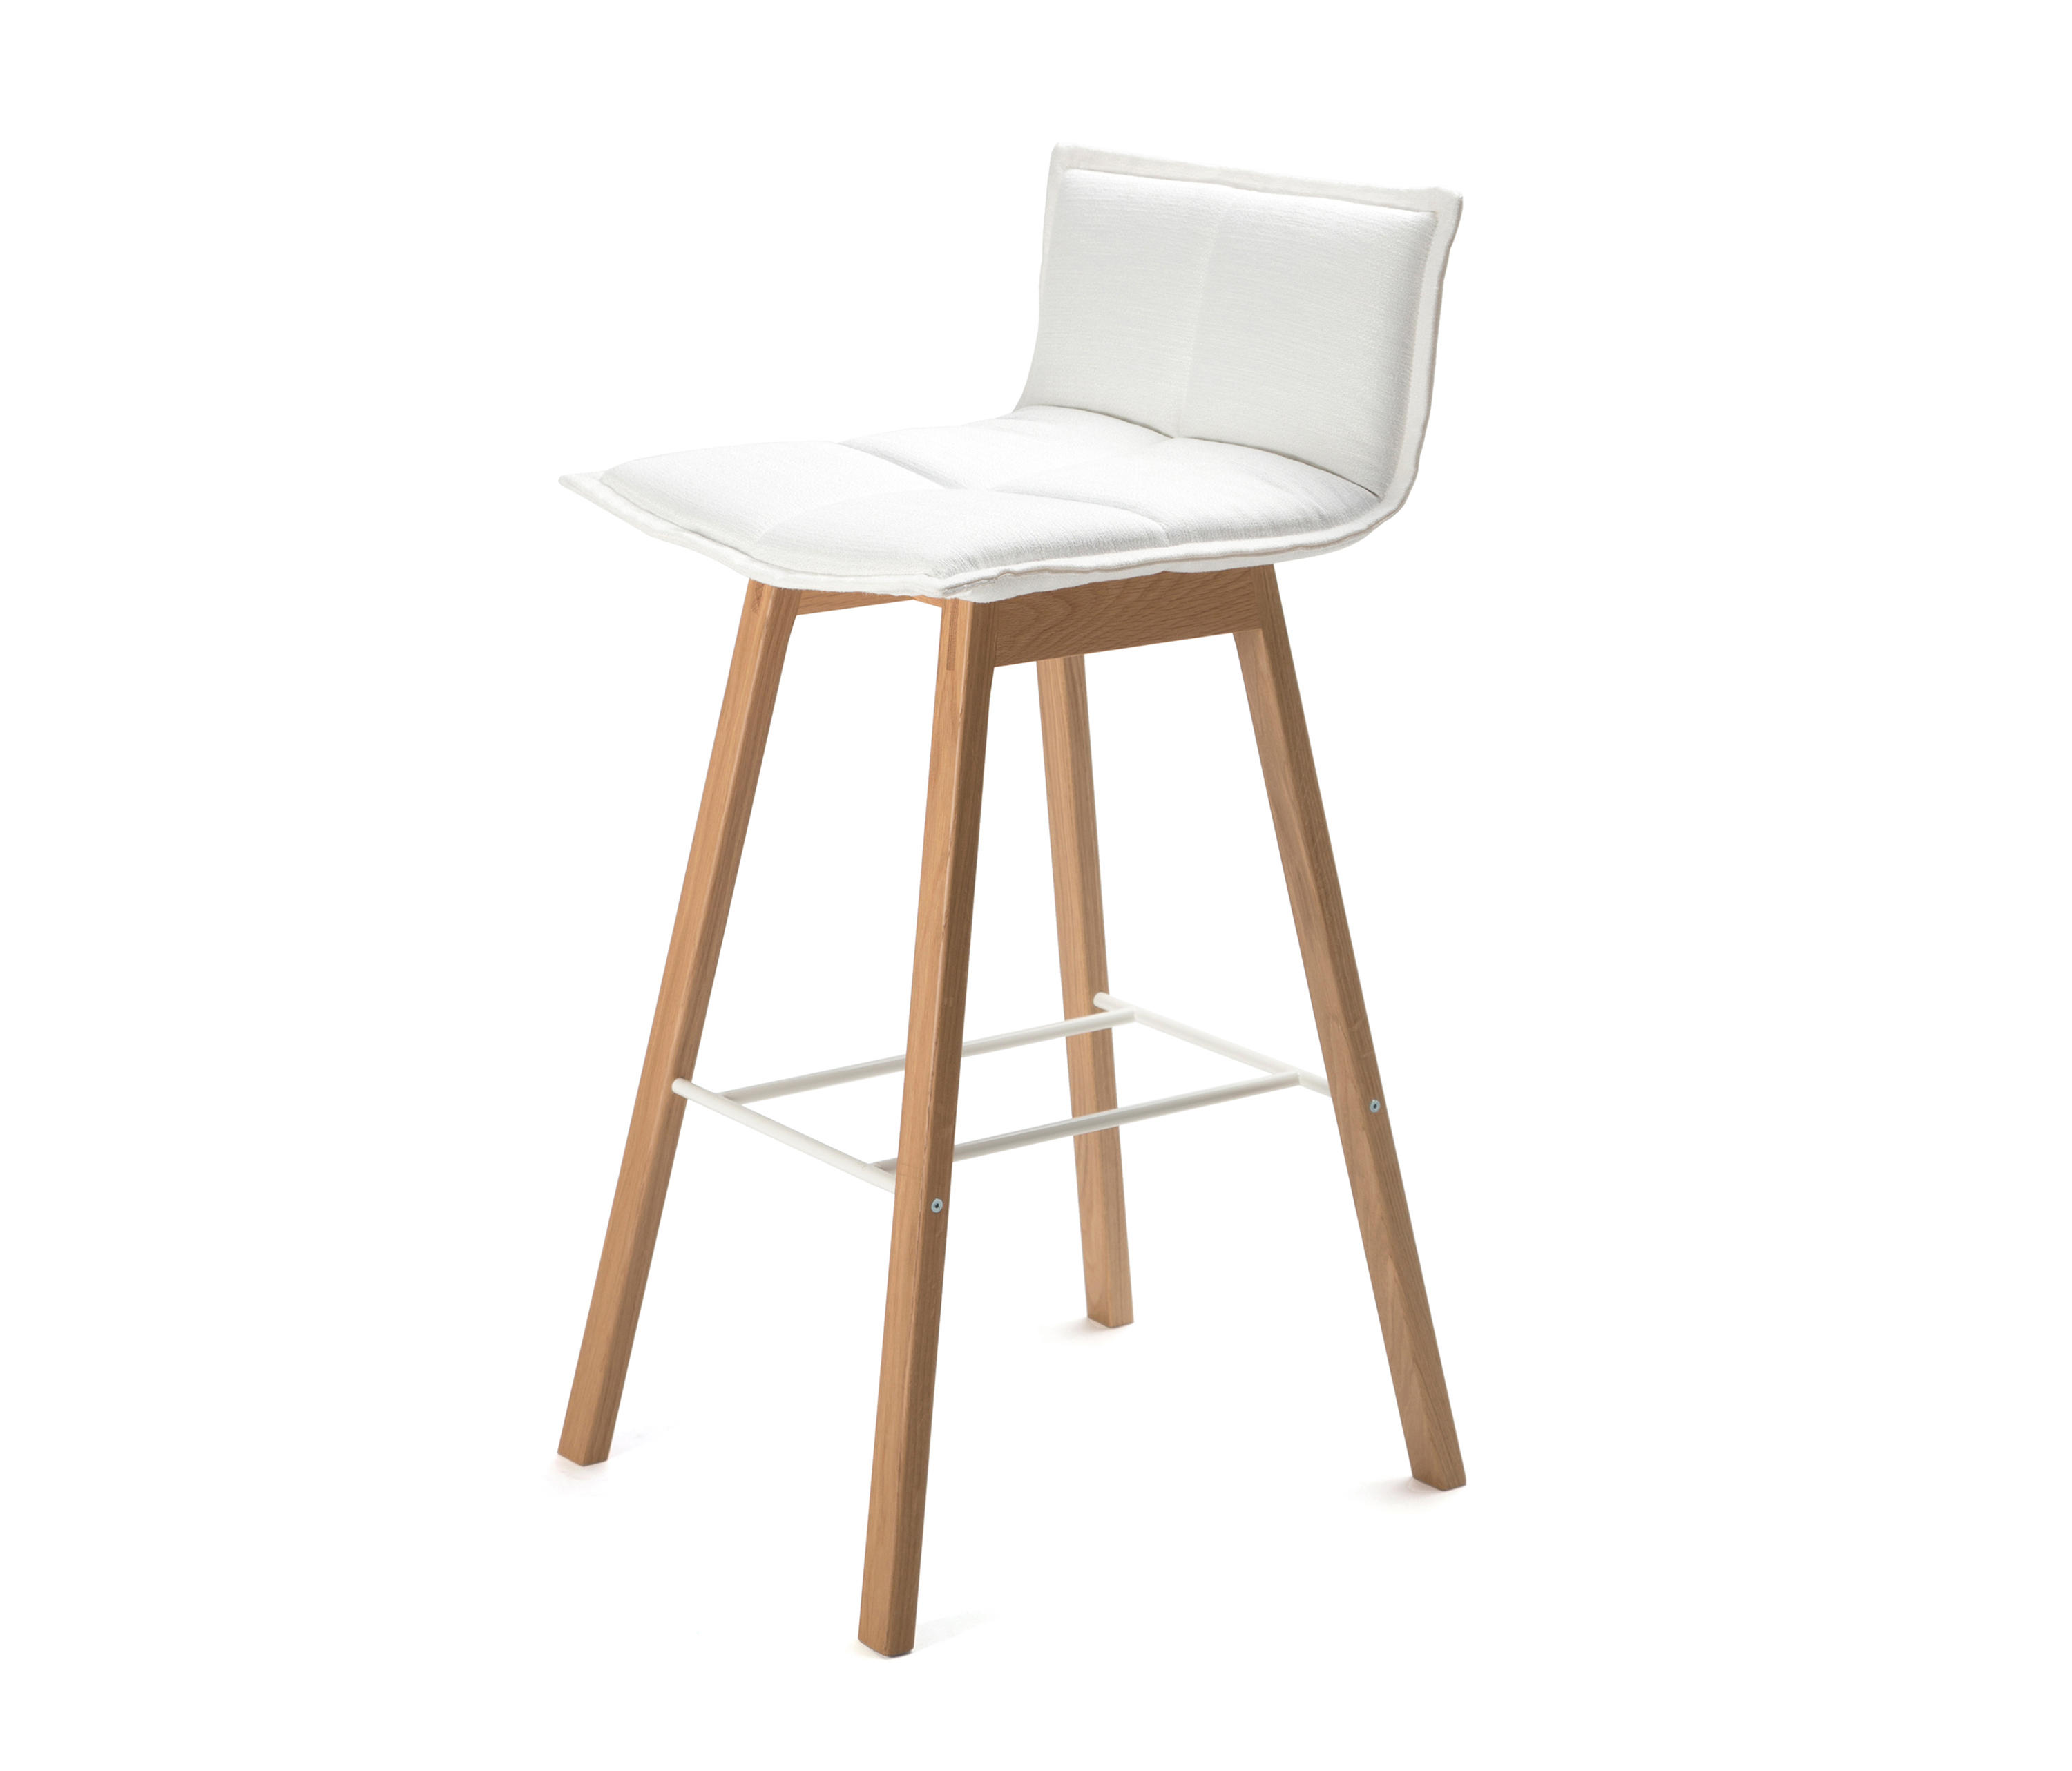 LAB BAR HIGH Bar stools from Inno